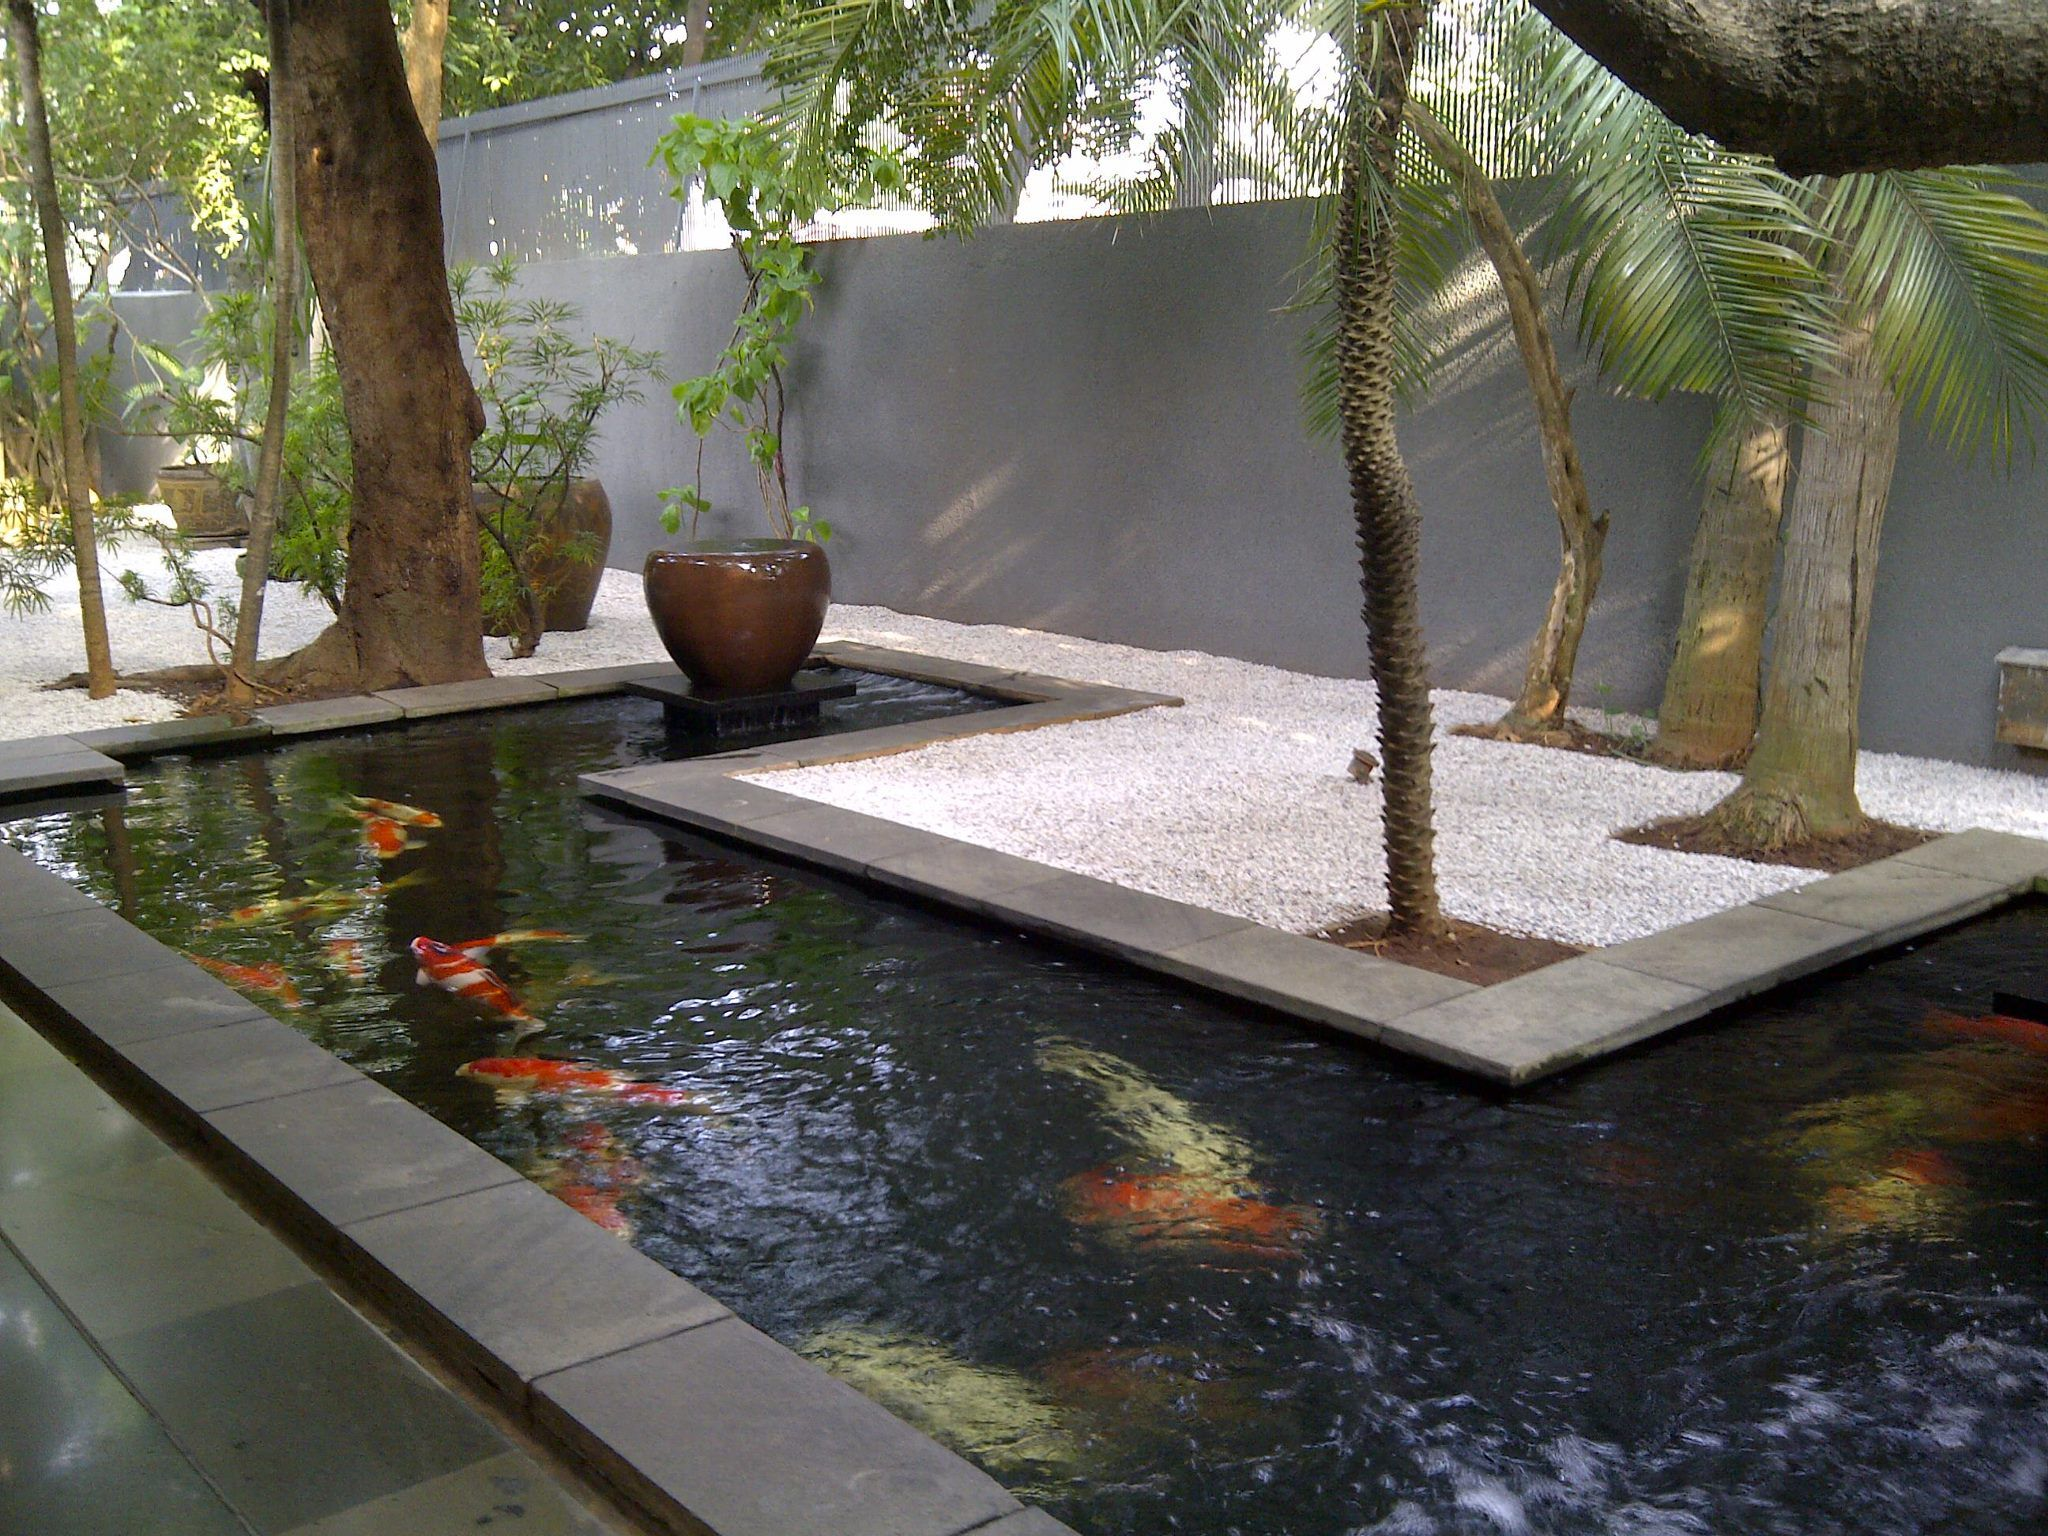 A Sleek Modern Koi Pond Garden Pond Design Indoor Pond Ponds Backyard